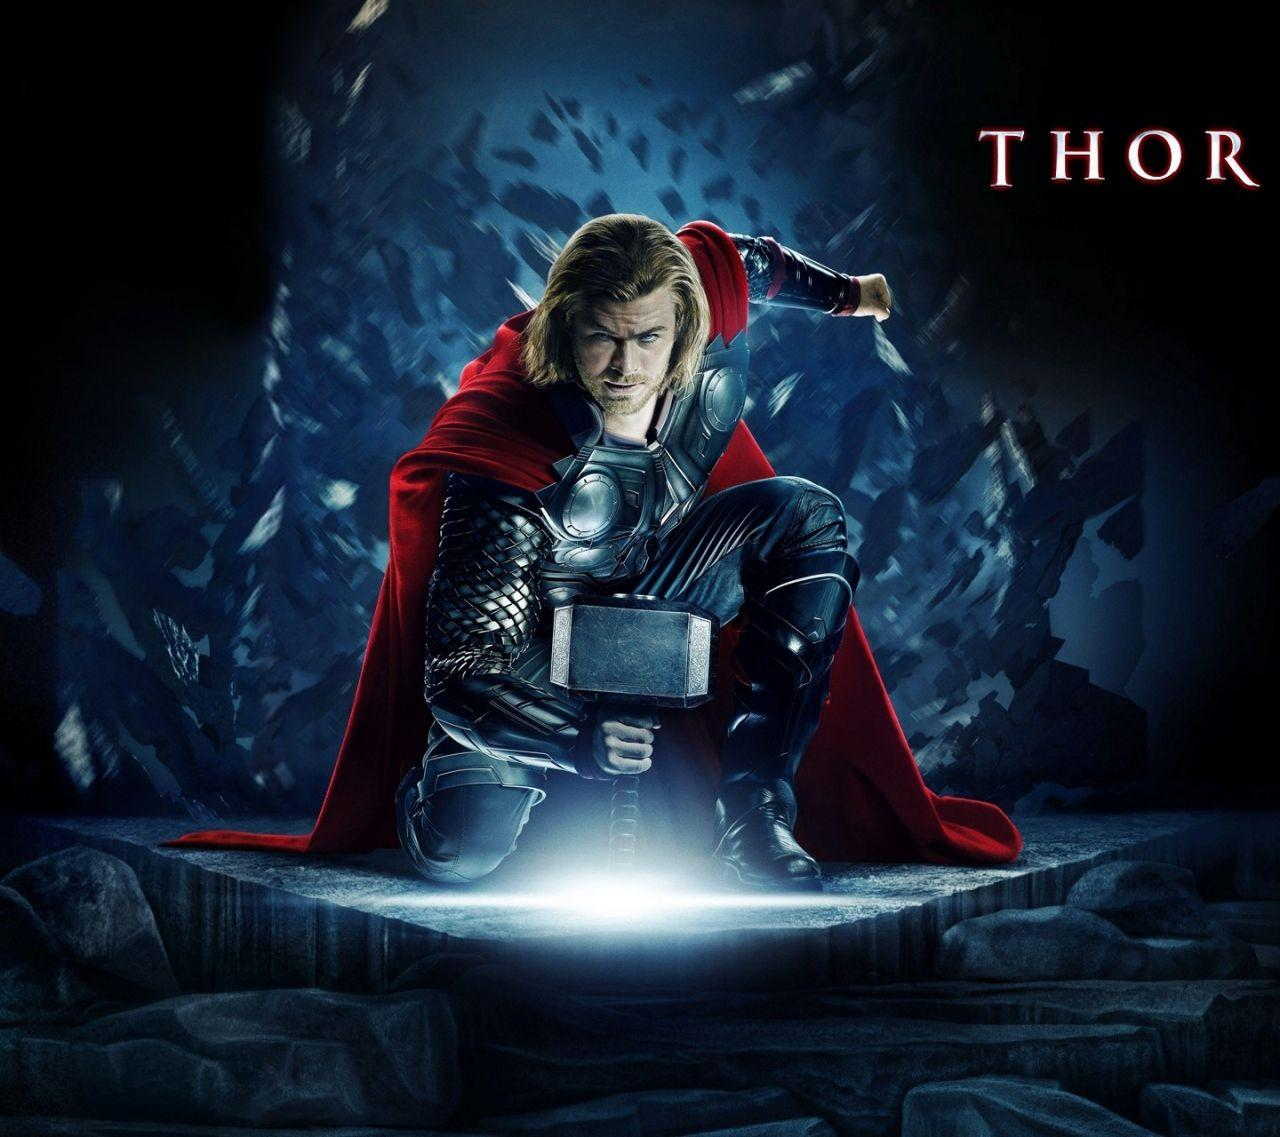 Photo Thor poster HD in the album Movie Wallpapers by djakrse